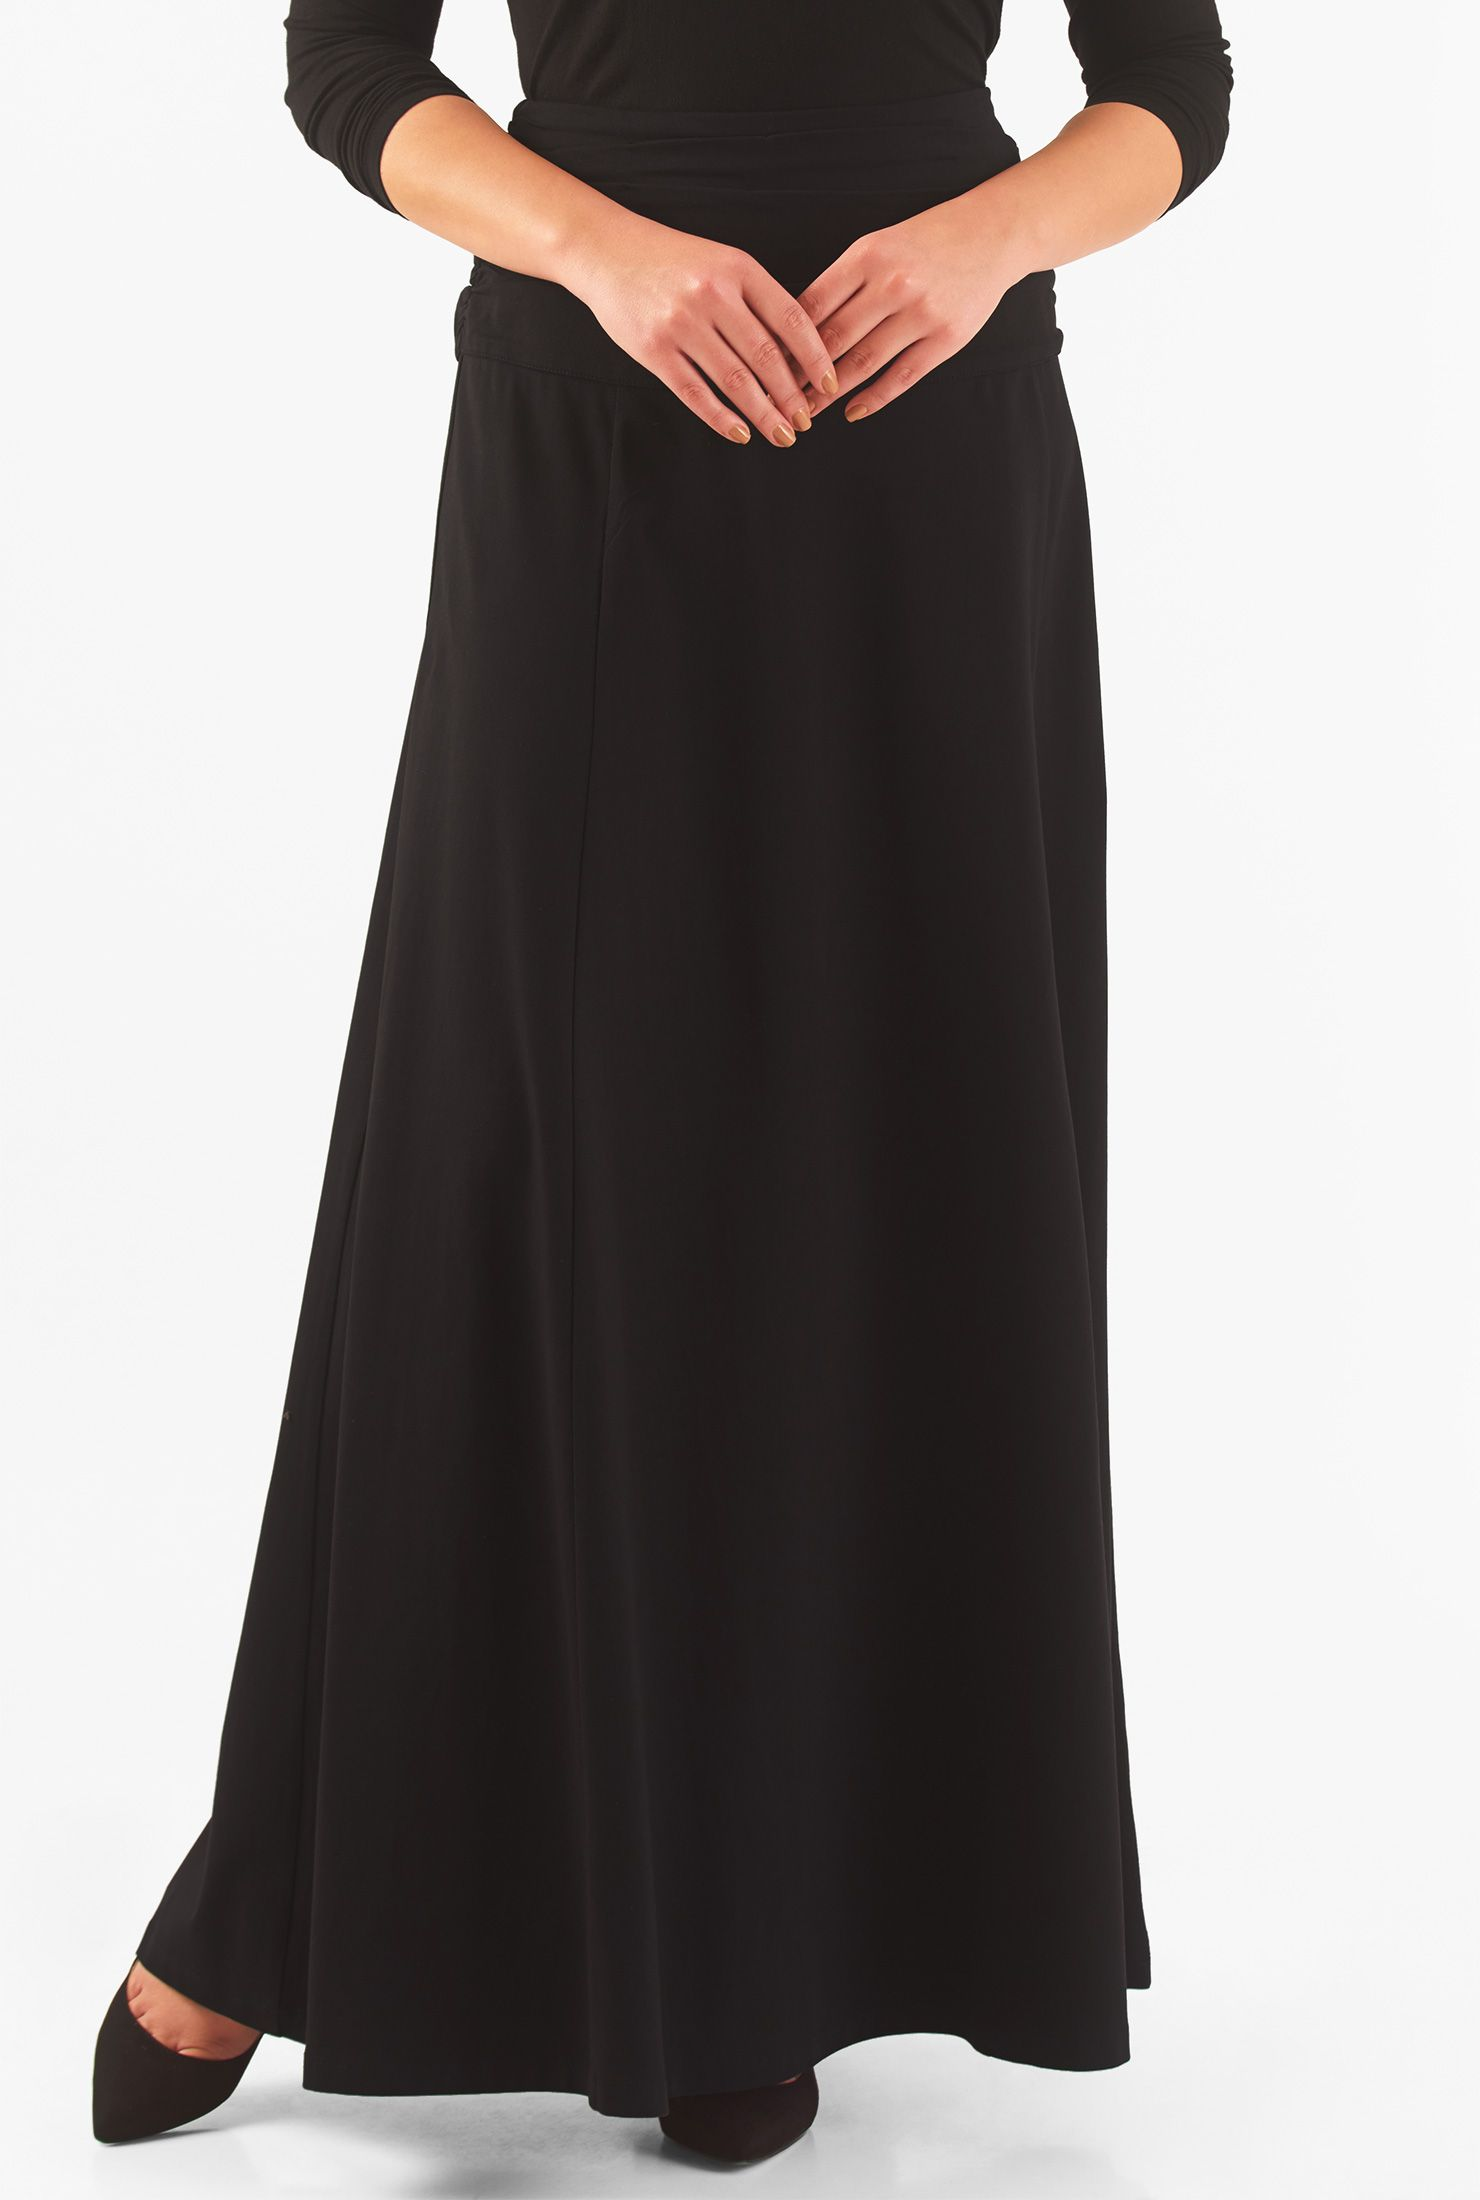 0333f708014 Long Jersey Knit Maxi Skirts - Gomes Weine AG